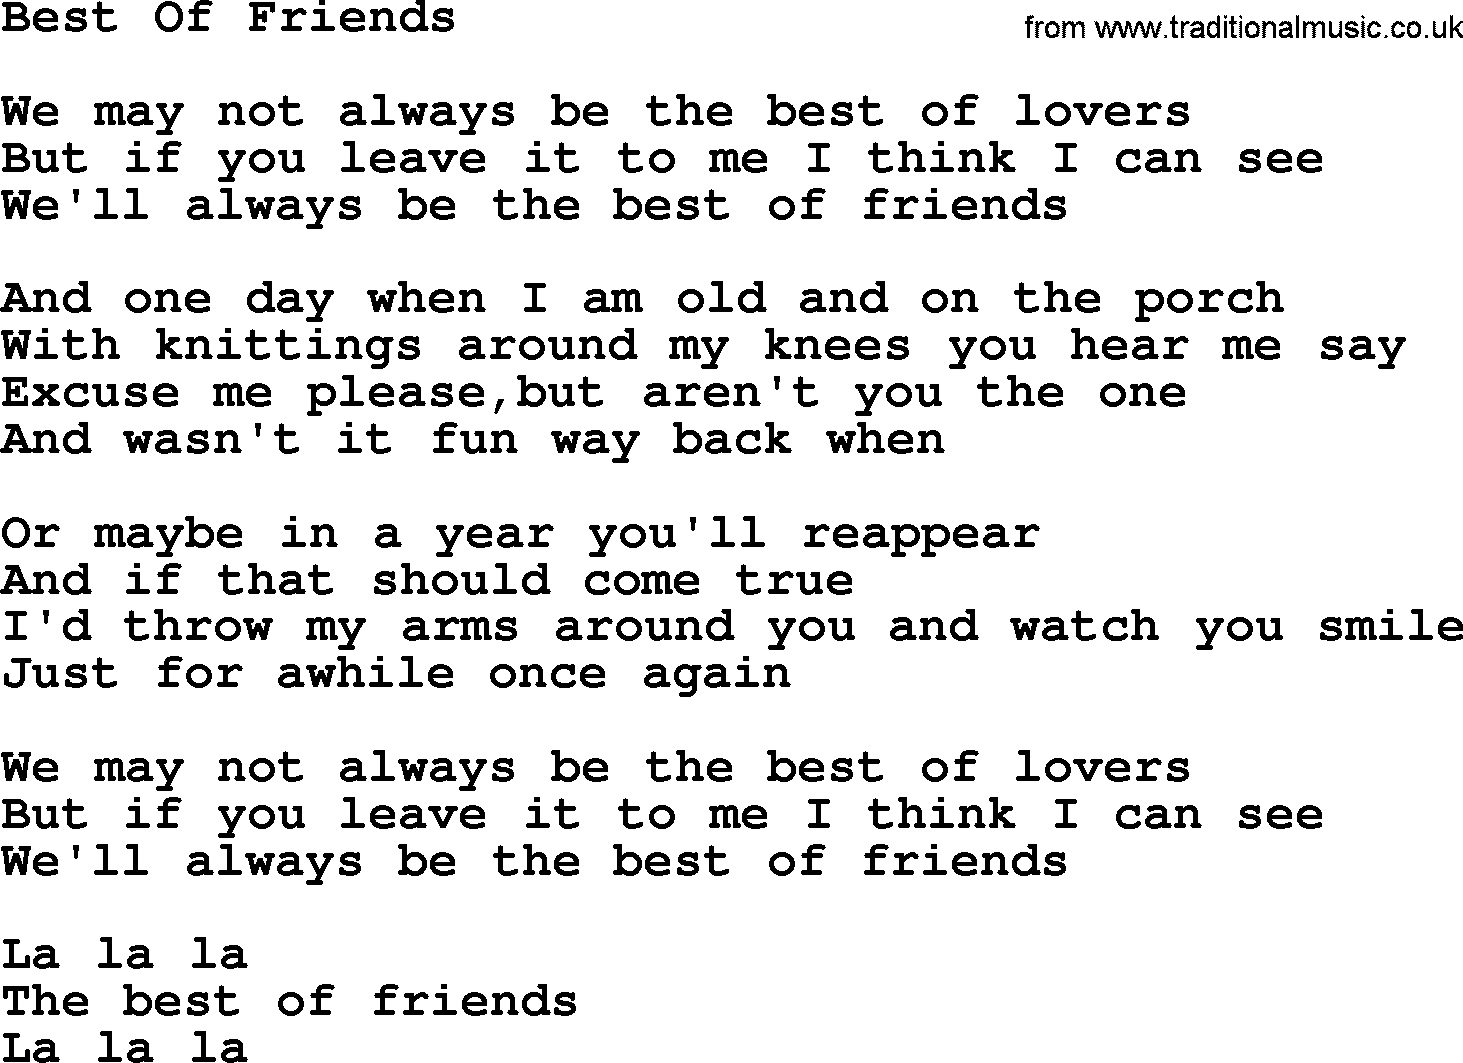 Friends and lovers song